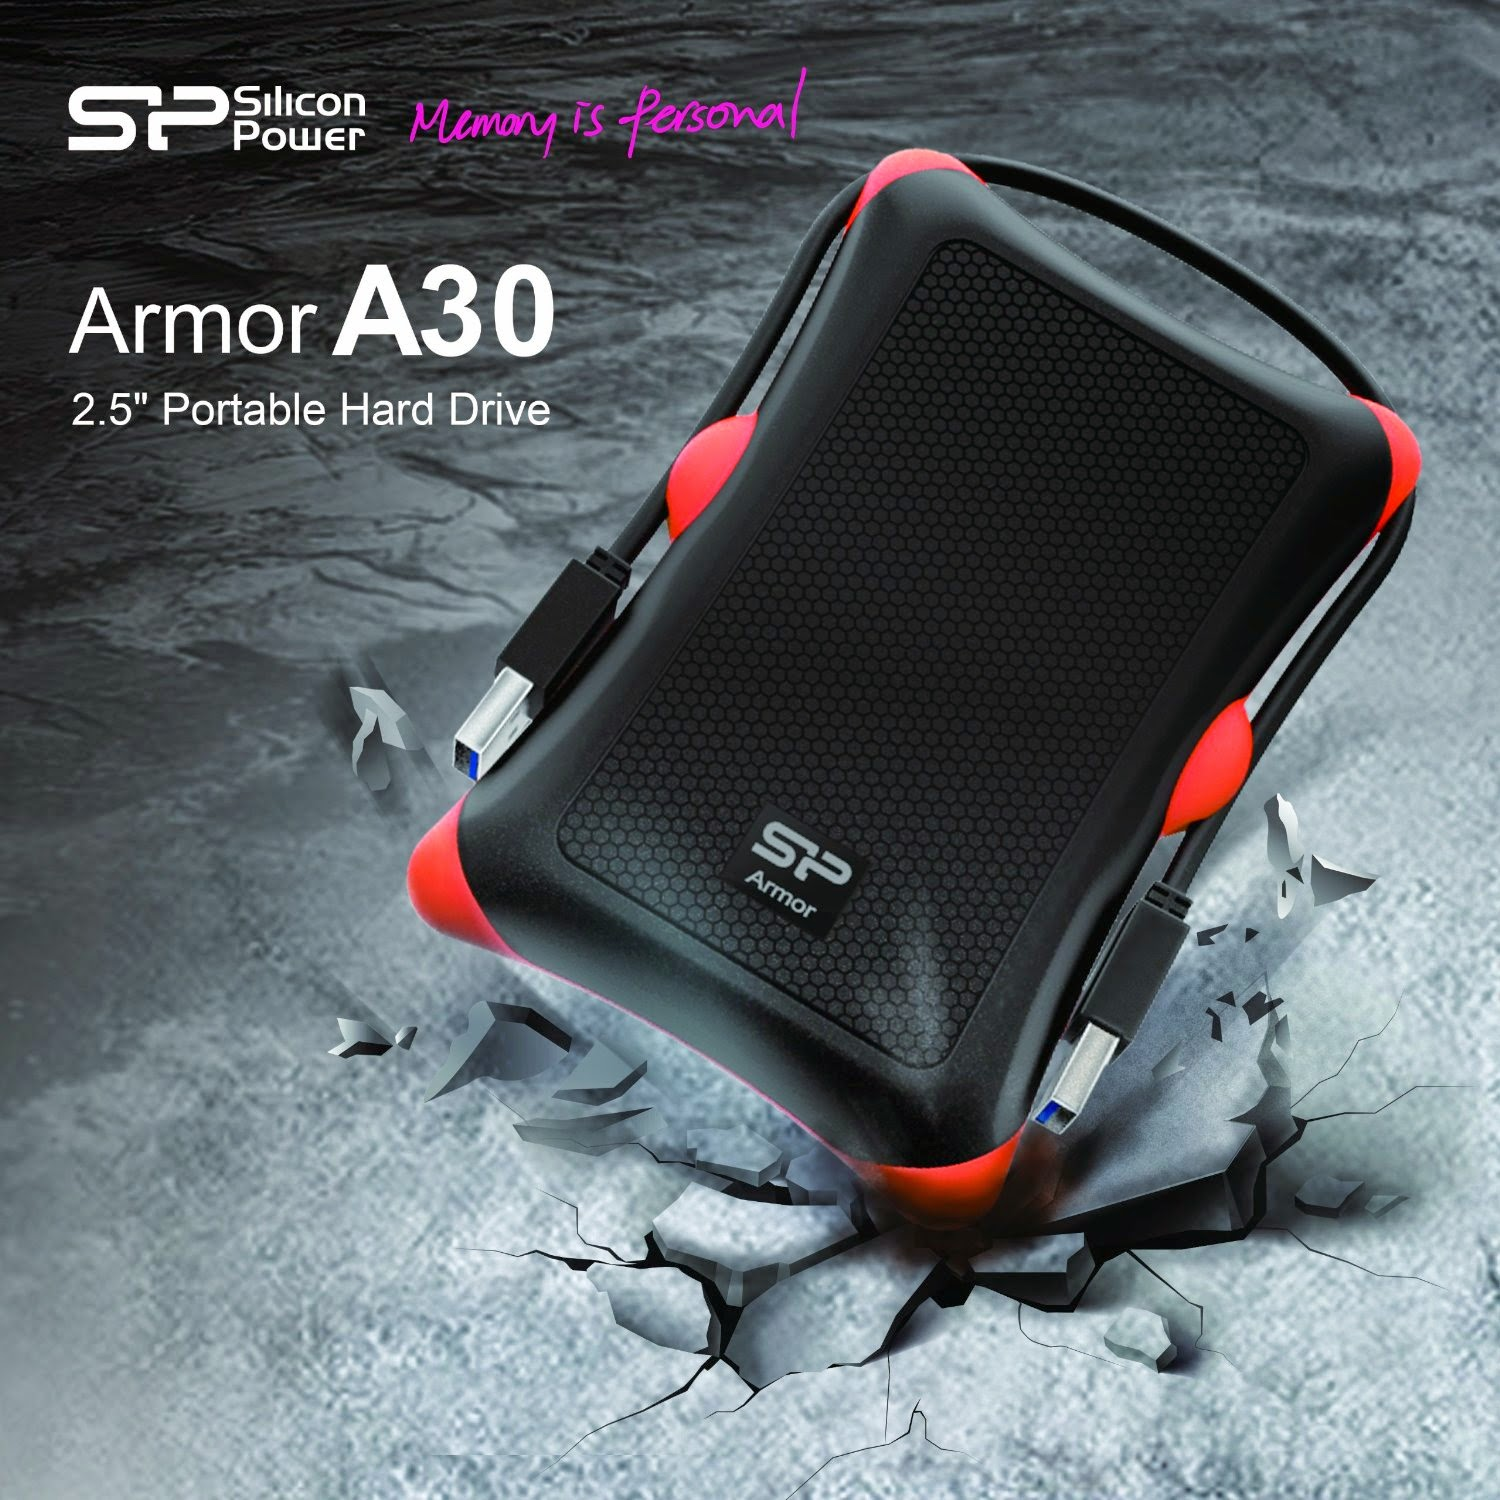 Silicon Power 500GB Rugged Armor A30 Military Shockproof Standard 2.5-Inch USB 3.0 External Portable Hard Drive